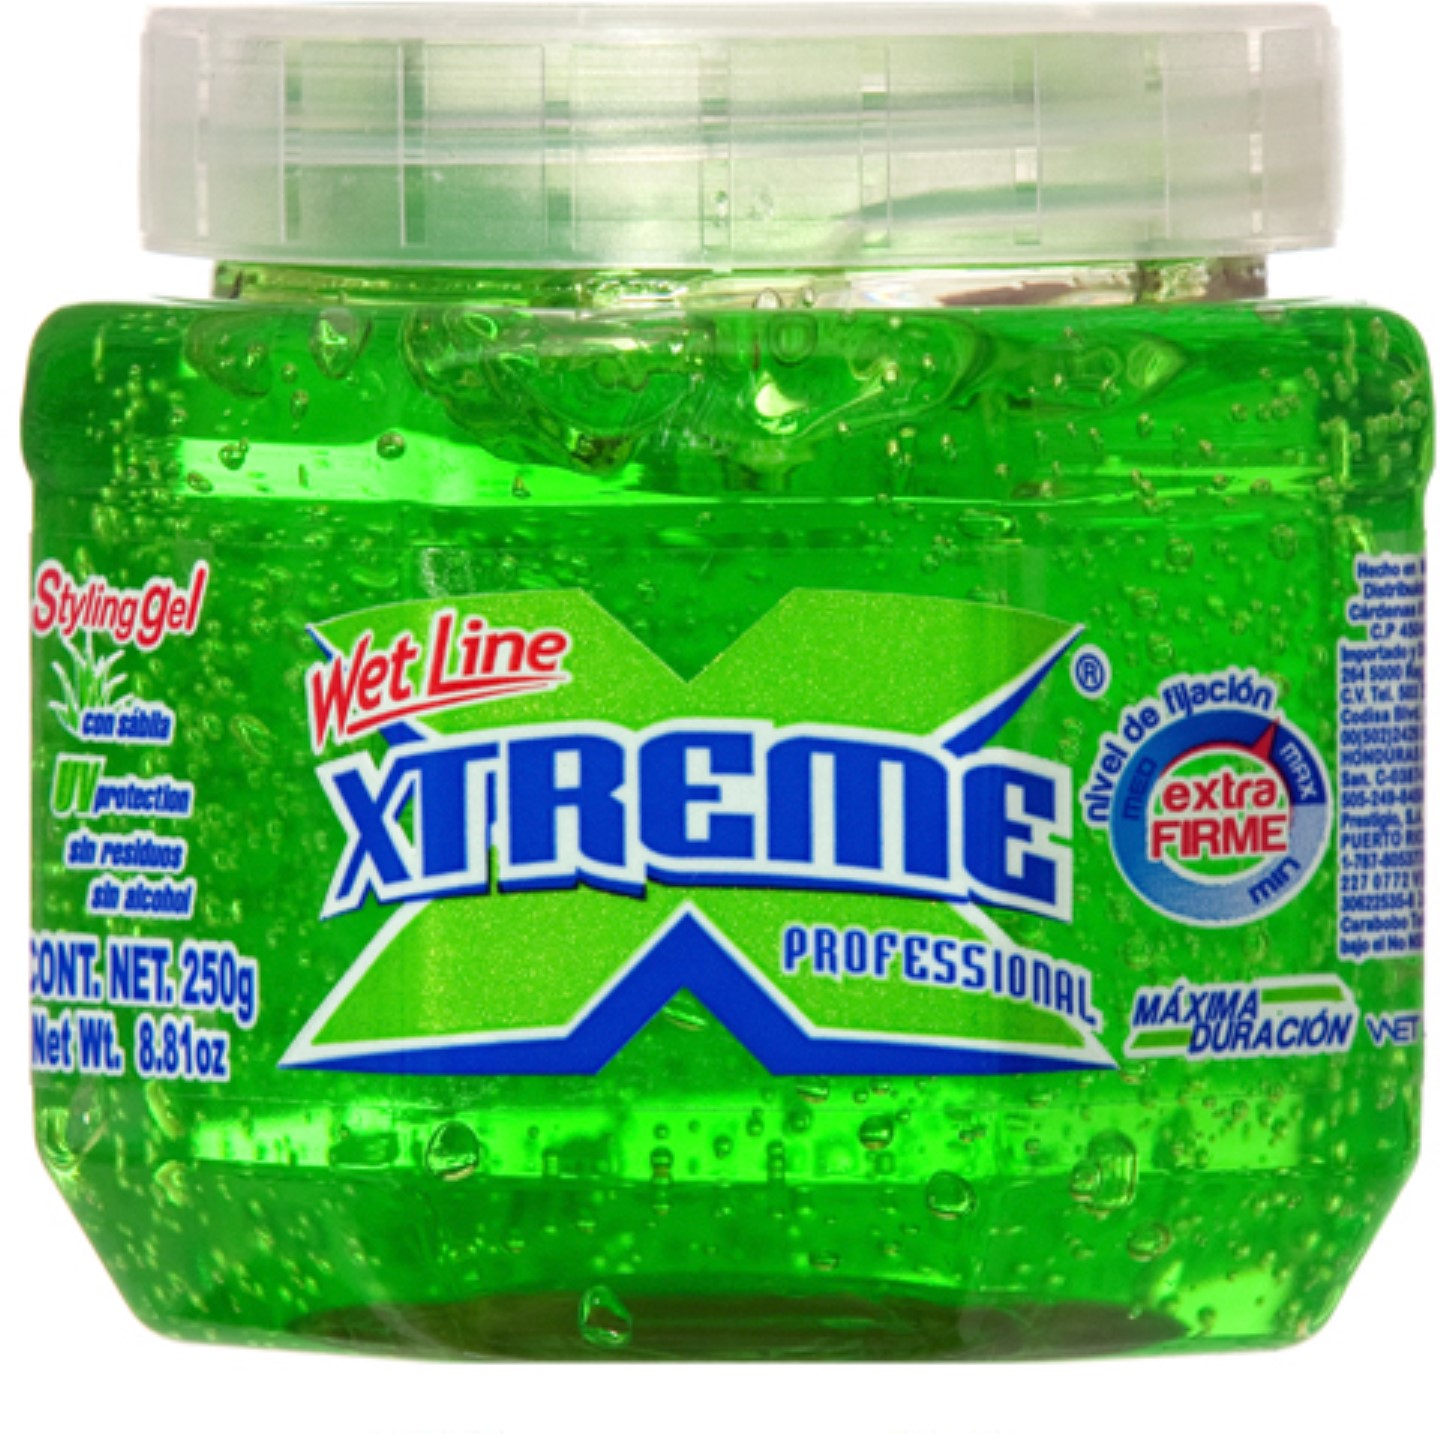 Xtreme Professional Wet Line Styling Gel Extra Hold Green. 8.8 oz (Pack of 4)